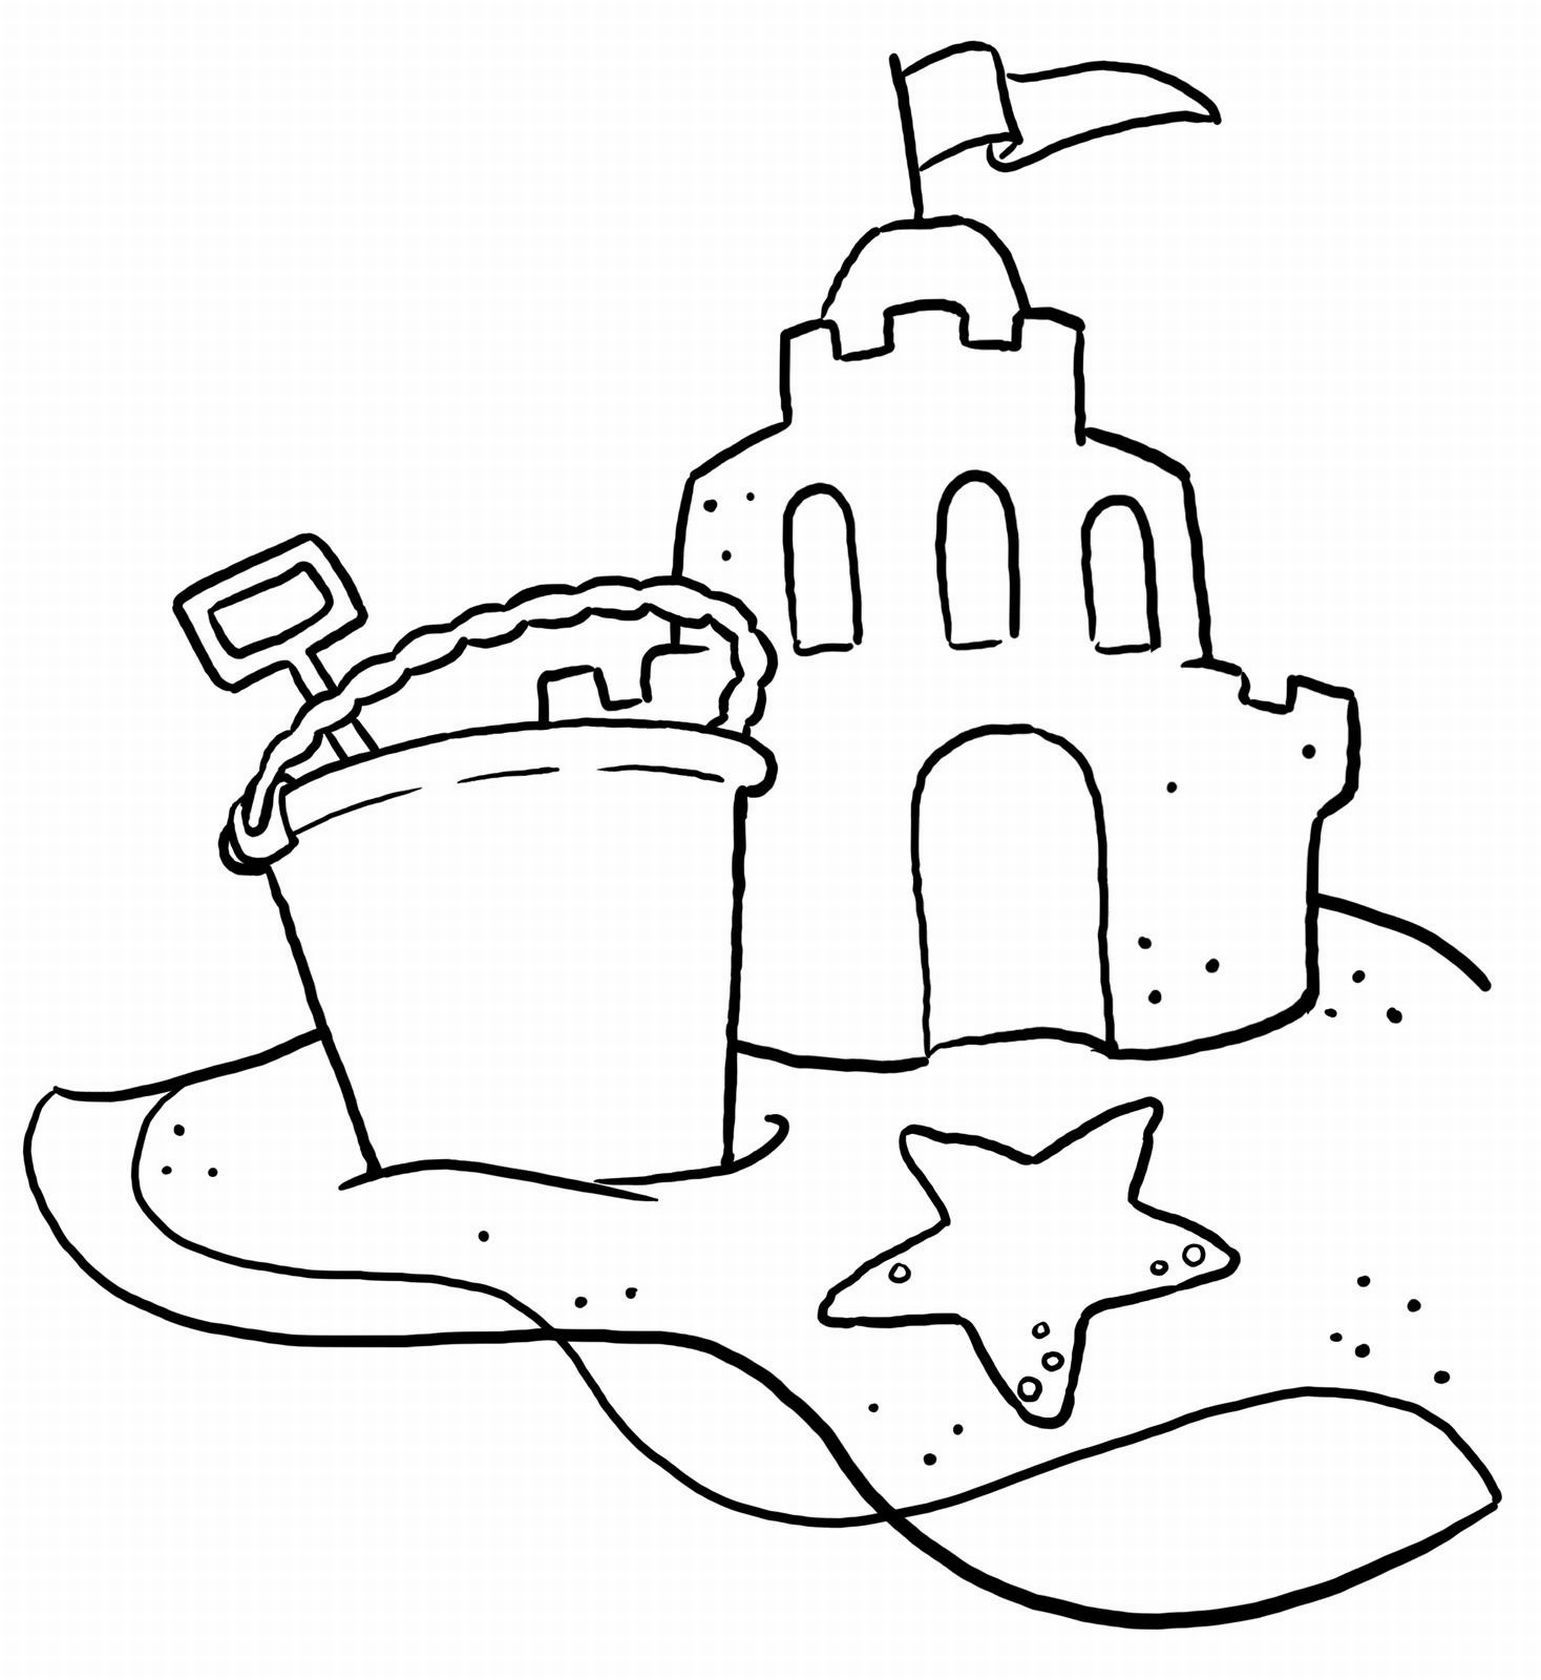 colouring pages of beach scene beach scene coloring pages getcoloringpagescom scene beach colouring pages of